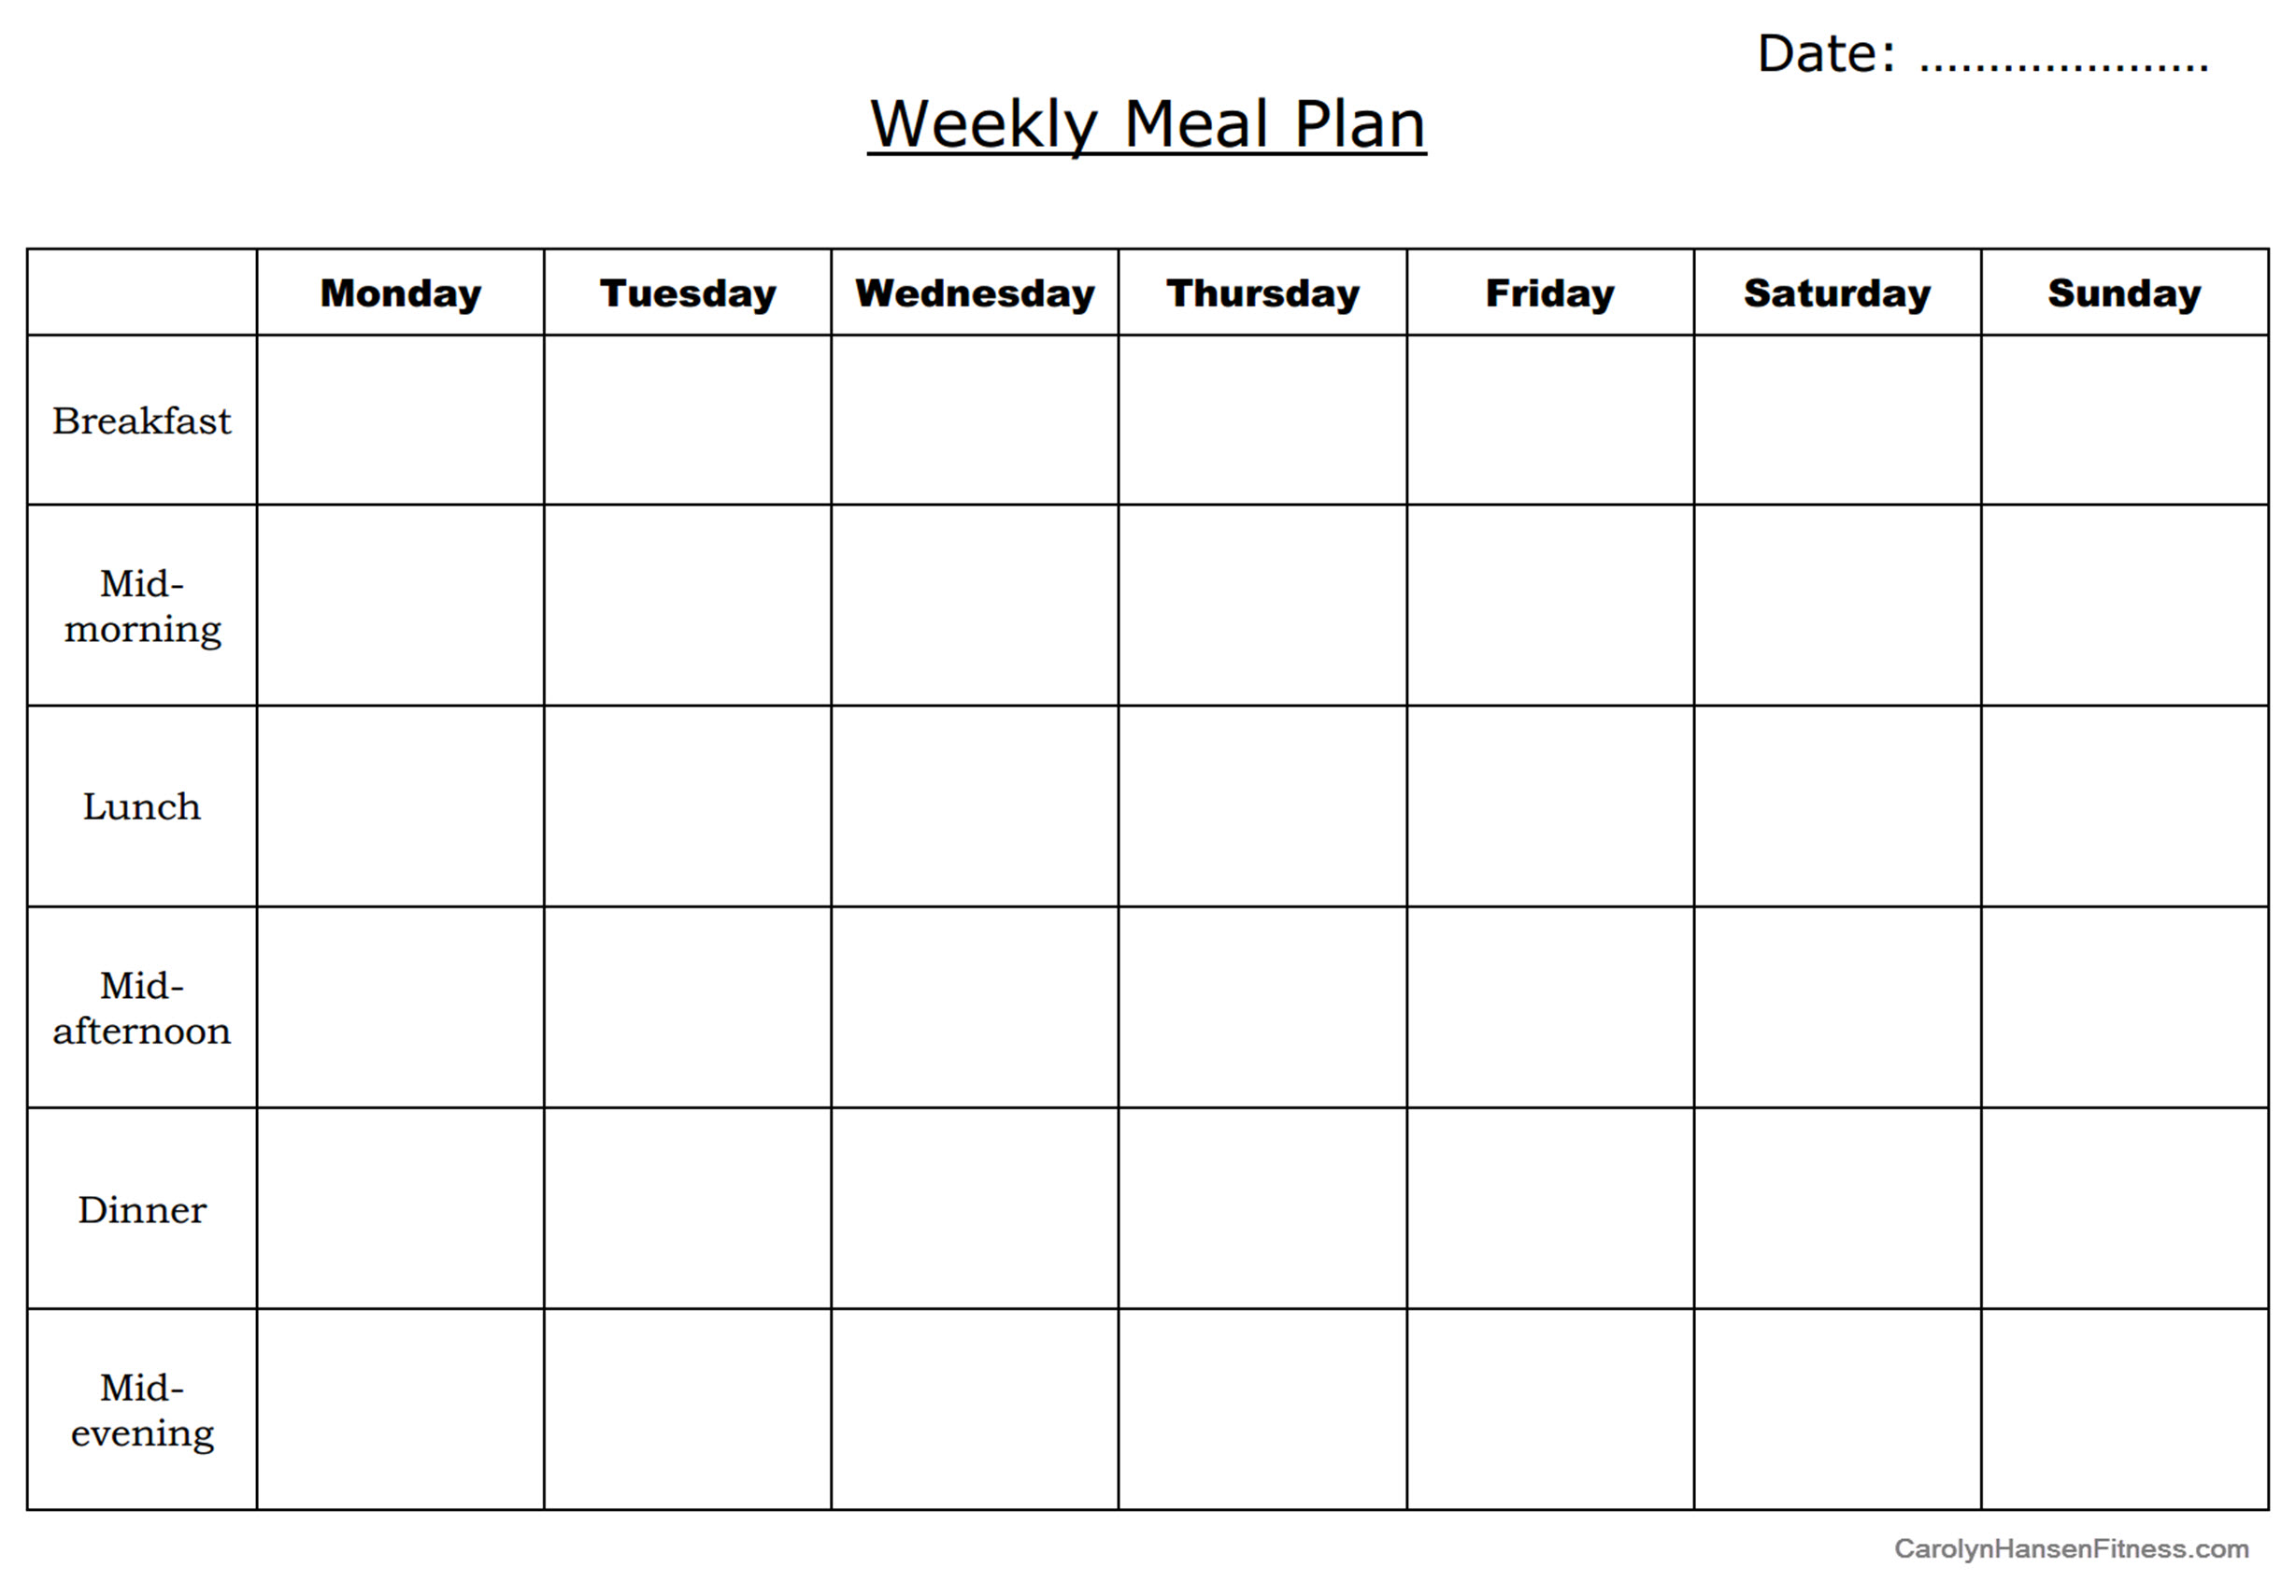 Worksheets Meal Planning Worksheet meal planning is key to eating healthy a spiral notebook great tool for your meals use one page the plan itself and opposite preparation instructions putting